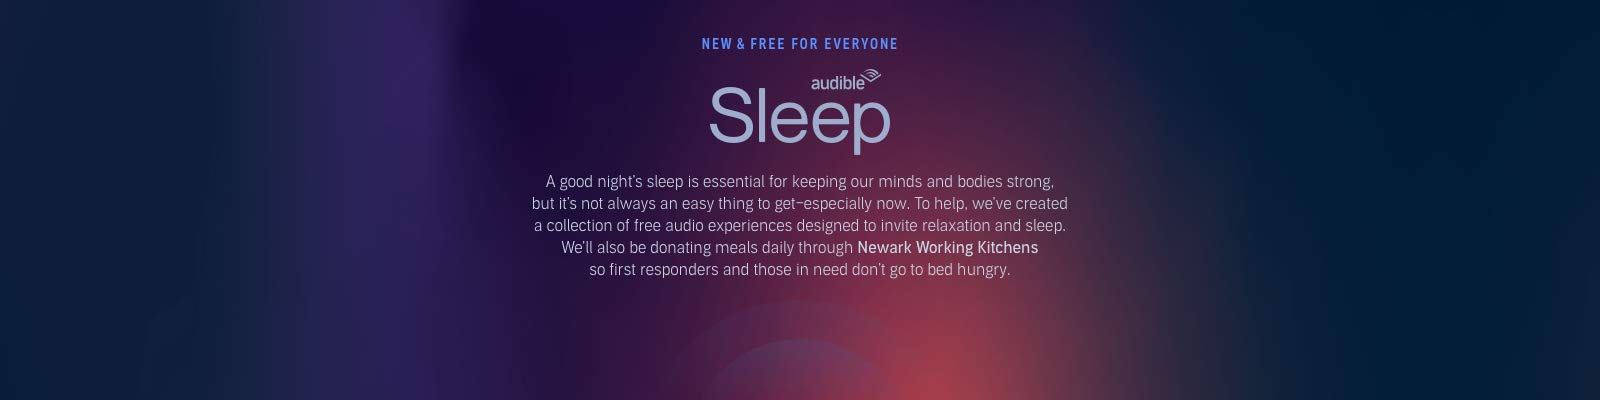 Audible Sleep. A good night's sleep is essential for keeping our minds and bodies strong, but it's not always an easy thing to get-especially now. To help, we've created a collection of free audio experiences designed to invite relaxation and sleep. We'll also be donating meals daily through Newark Working Kitchens so first responders and those in need don't go to bed hungry.